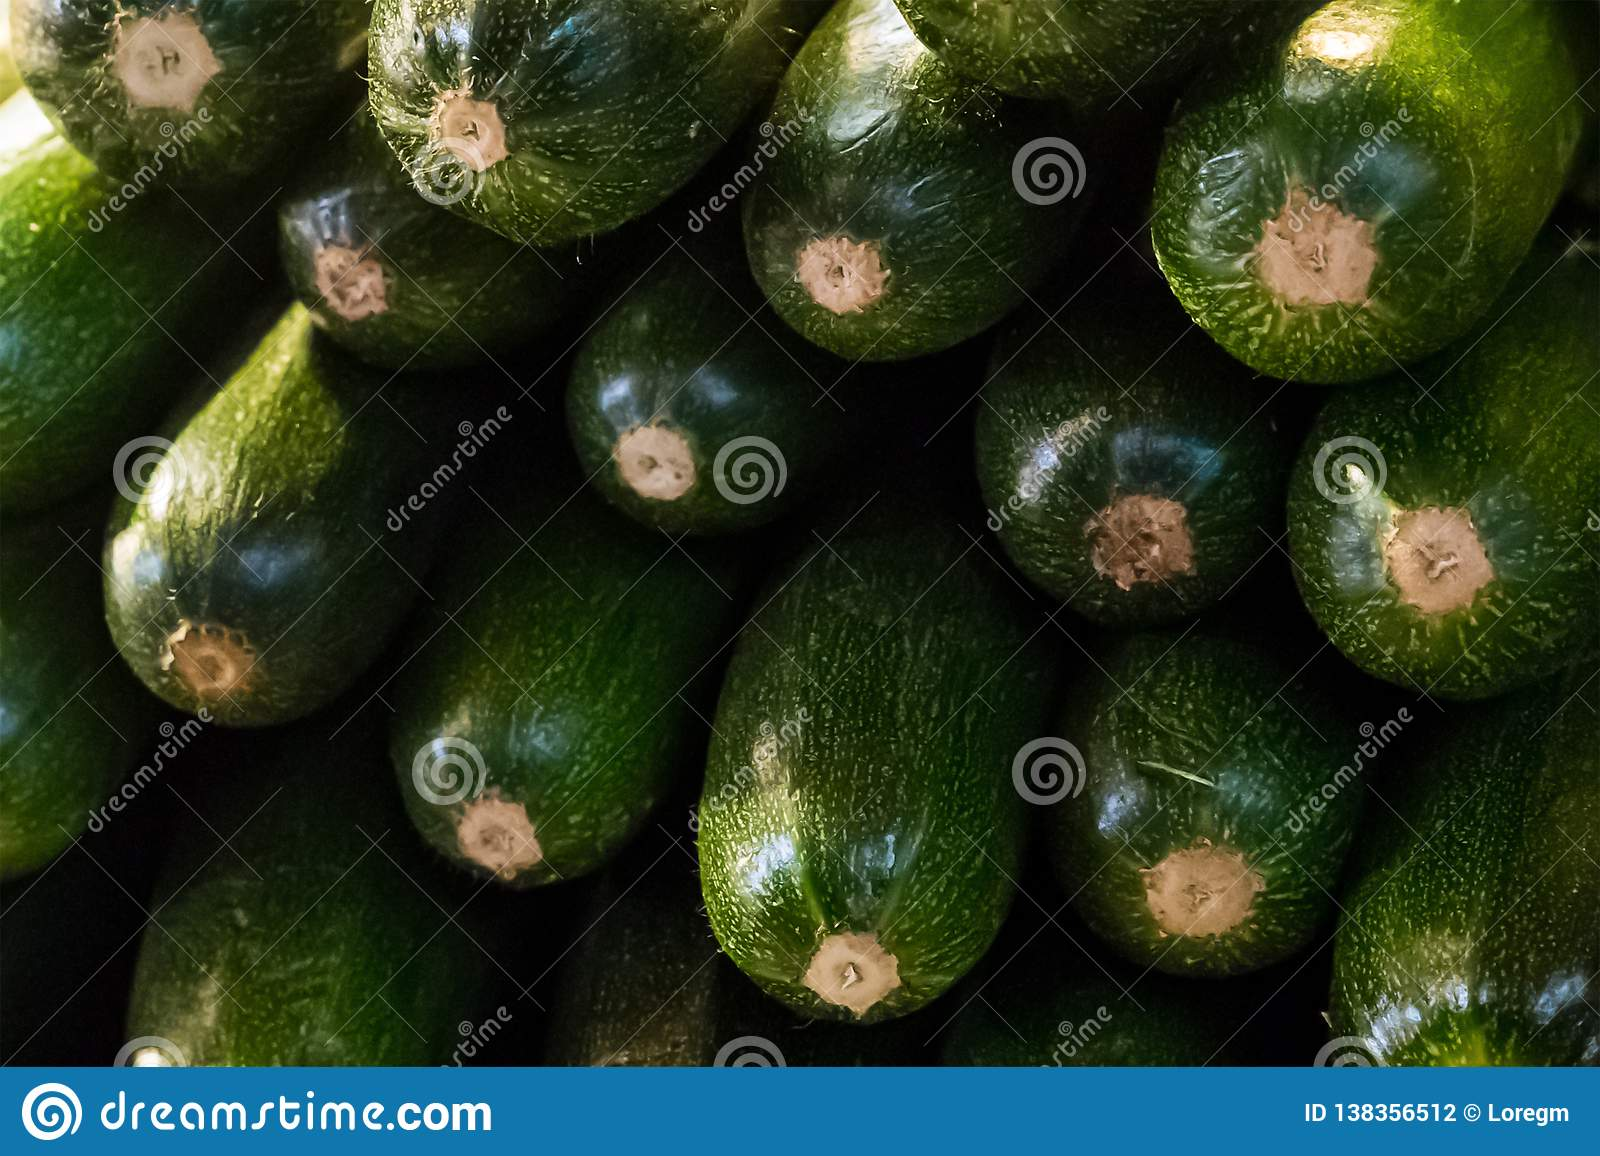 Set row of zucchini green fresh mature vegetables long fruits green dark end stack ingredient stew background backing